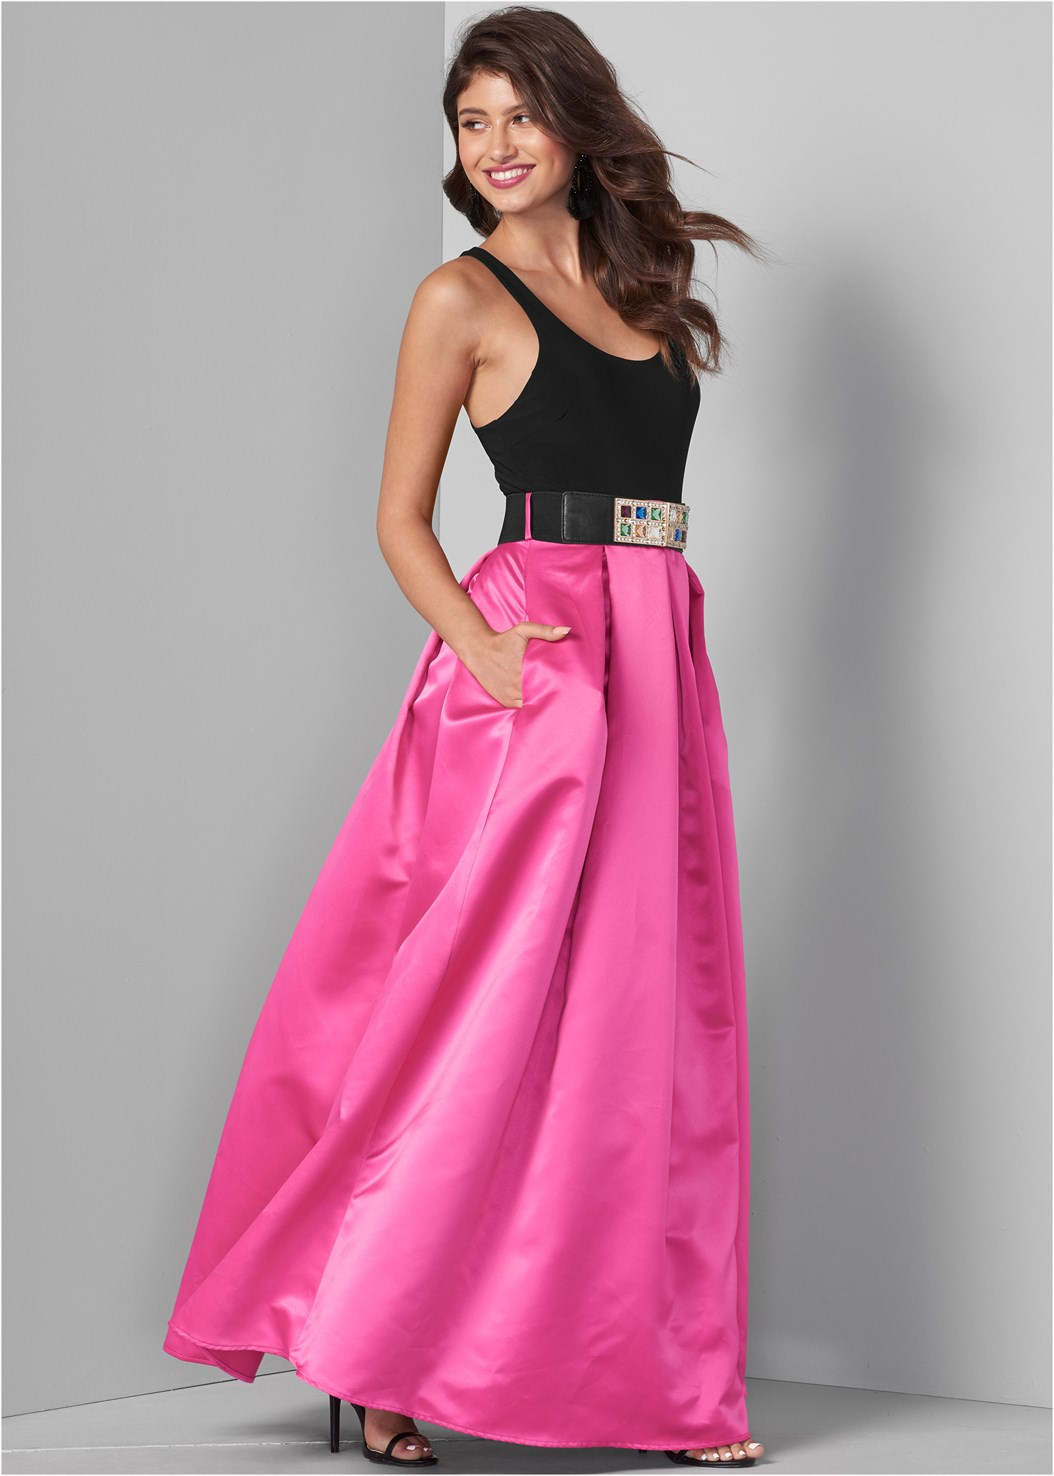 Belted Long Dress,High Heel Strappy Sandals,Beaded Tassel Earrings